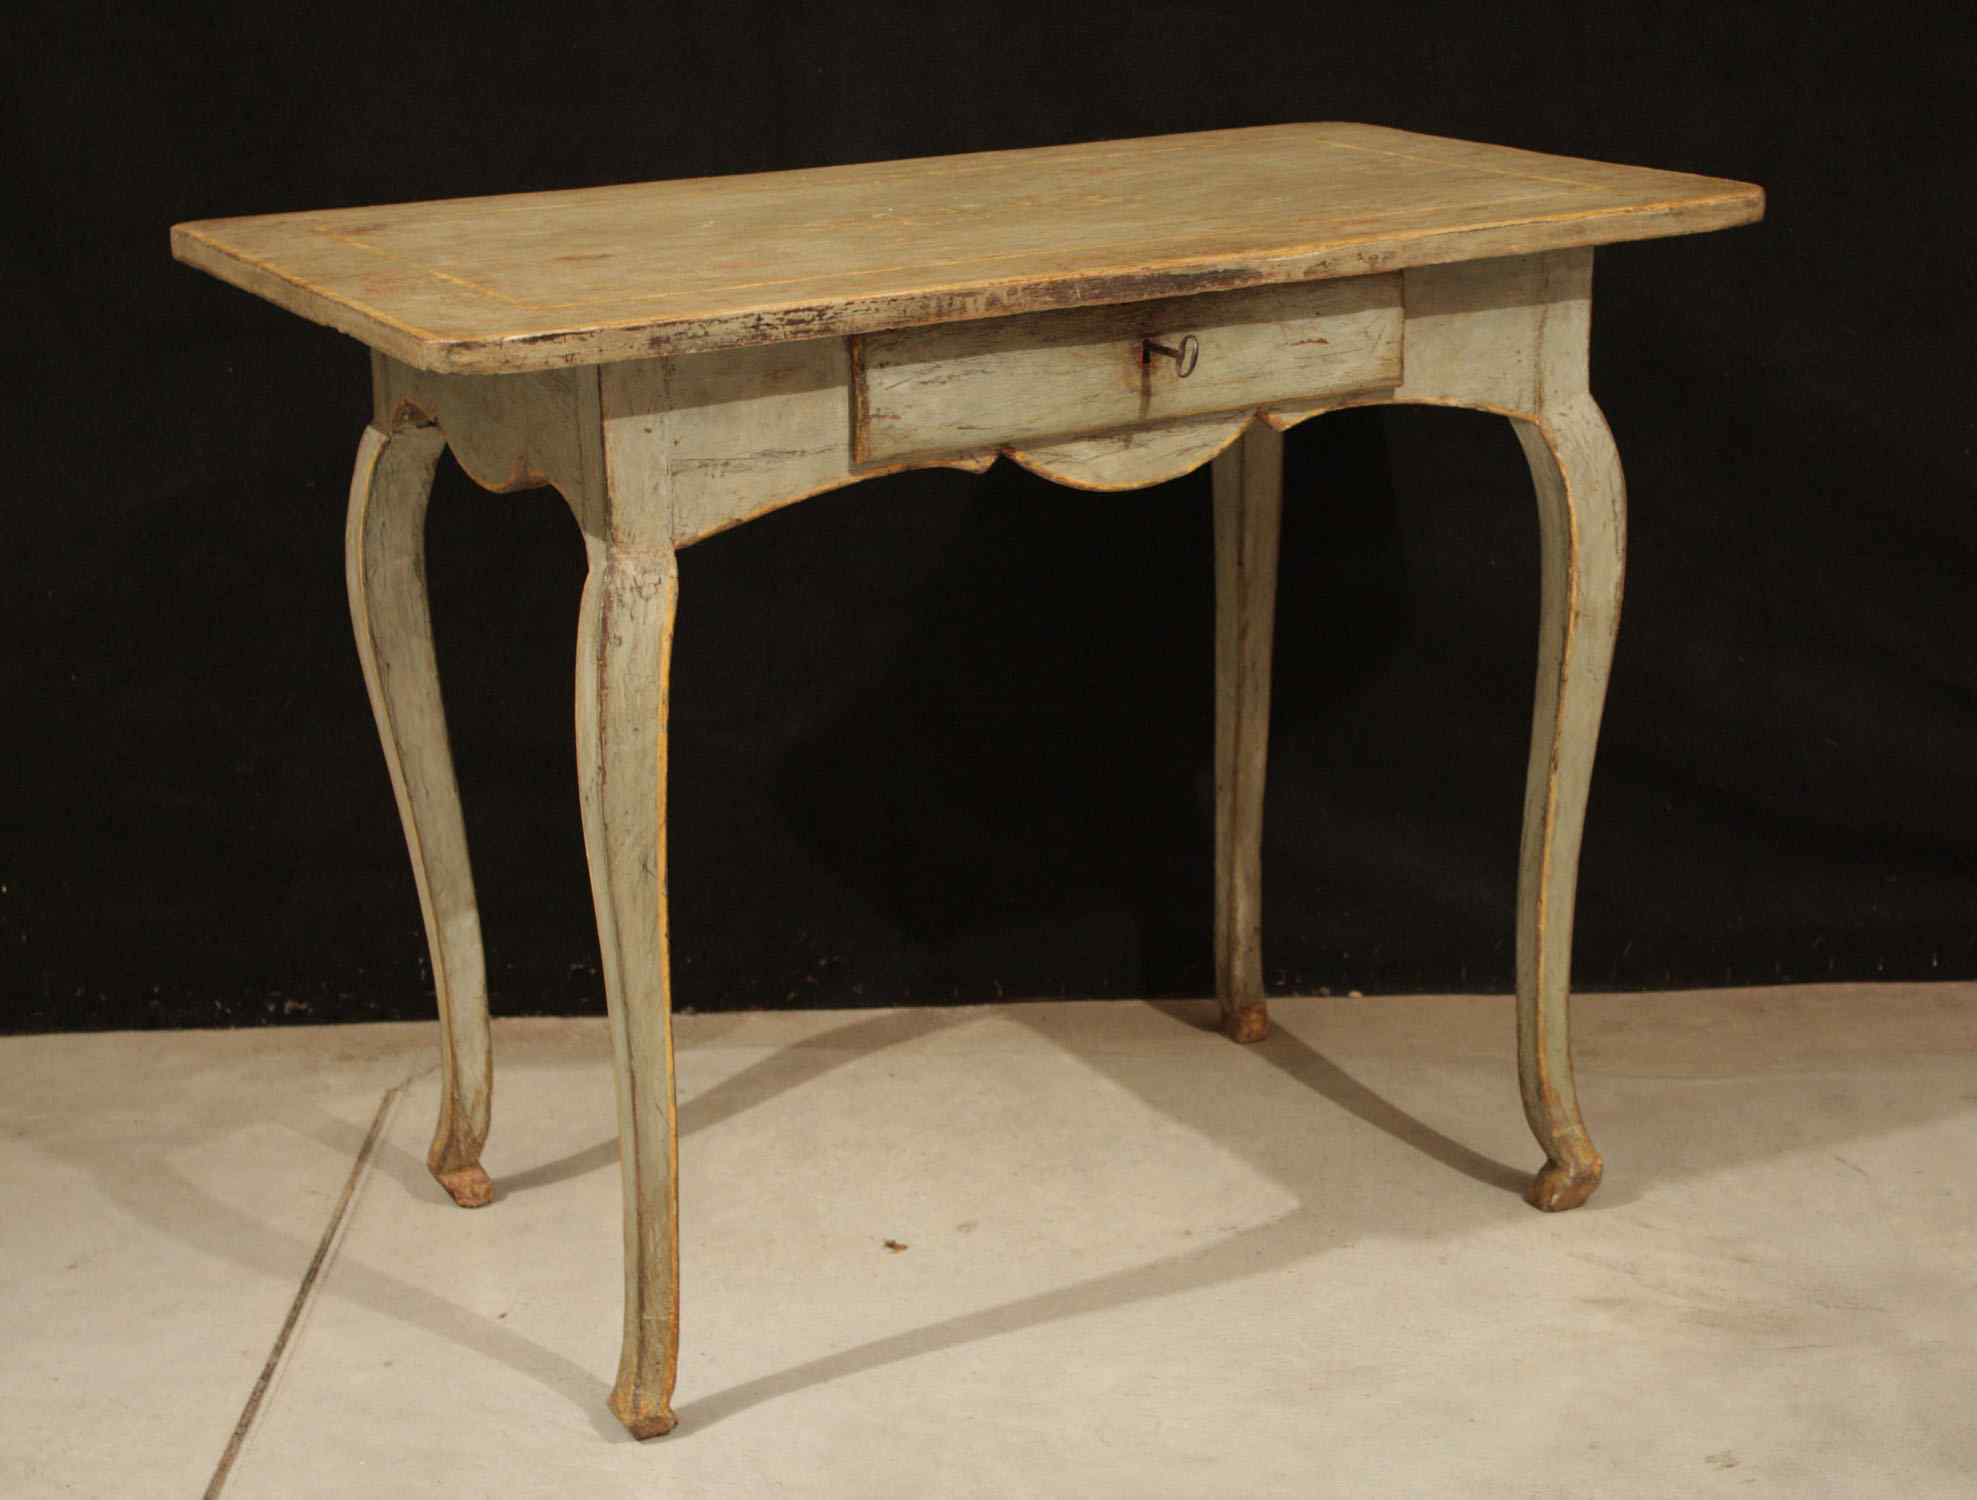 Table basse laqu e louis xv lucca anticswiss - Table basse louis xiv ...